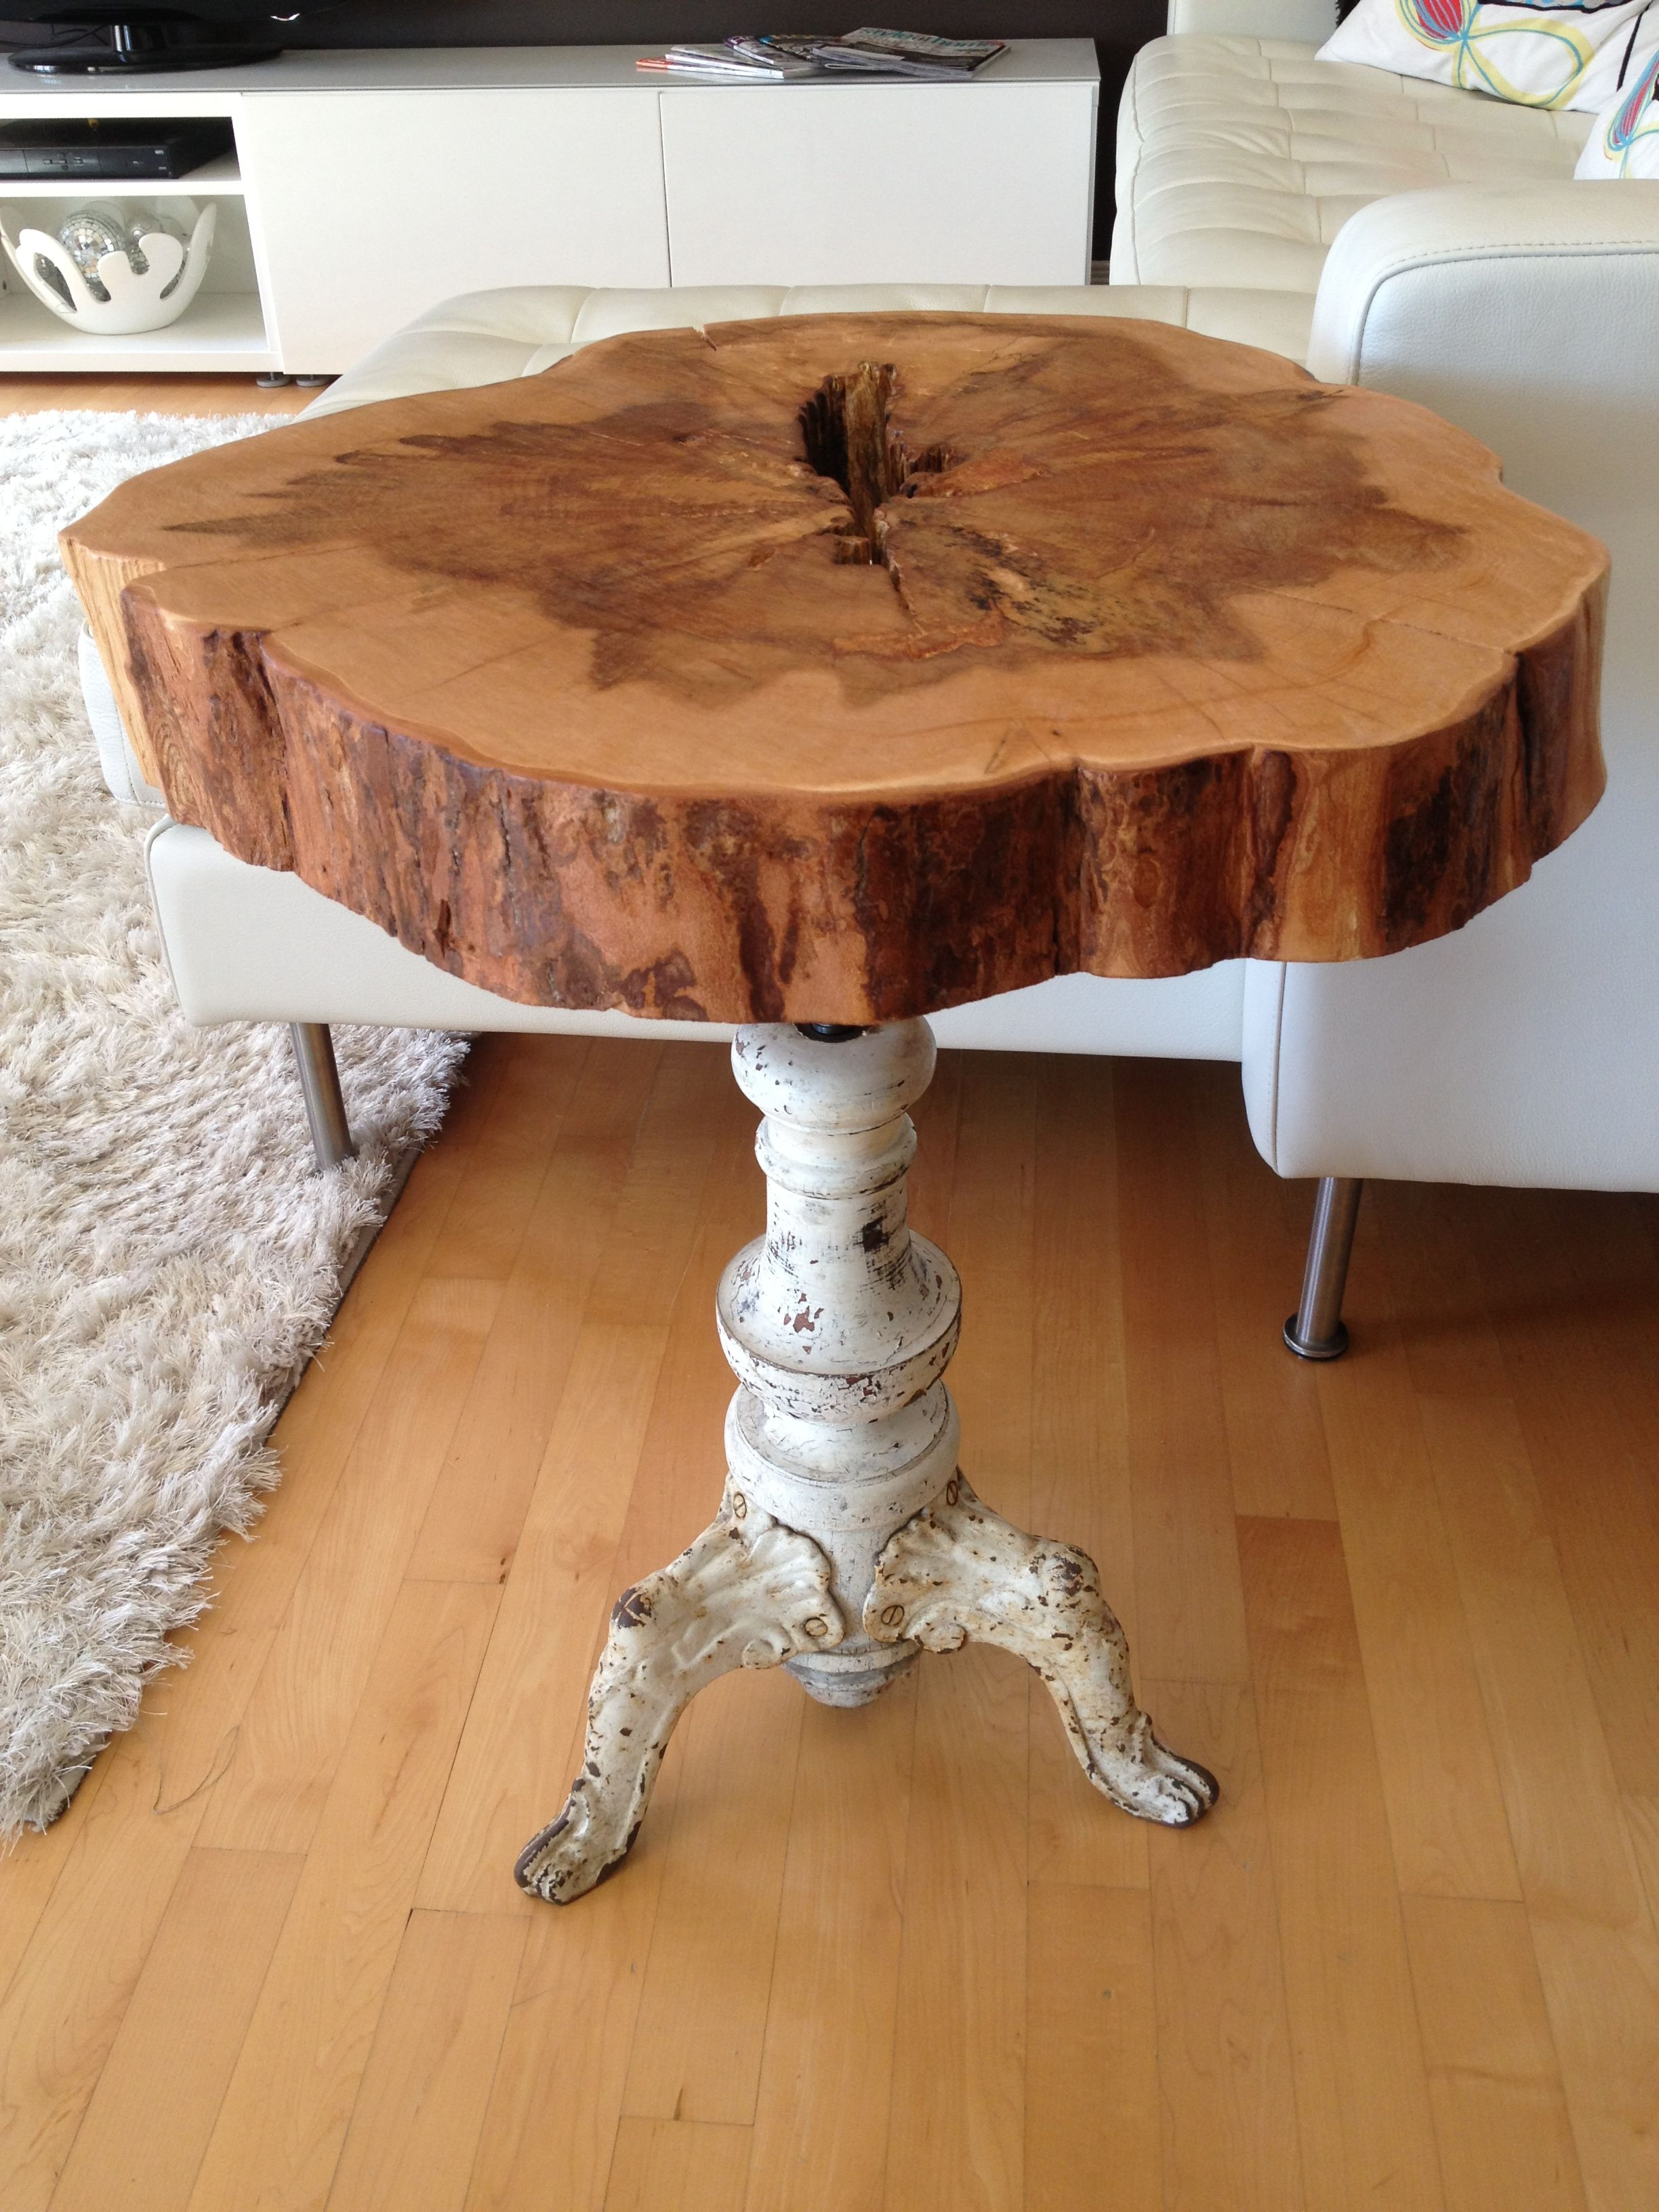 diy tree stump table ideas how make them end using recycled materials for why not fancy tablecloths white resin outdoor side tables platform dog homebase garden furniture wooden